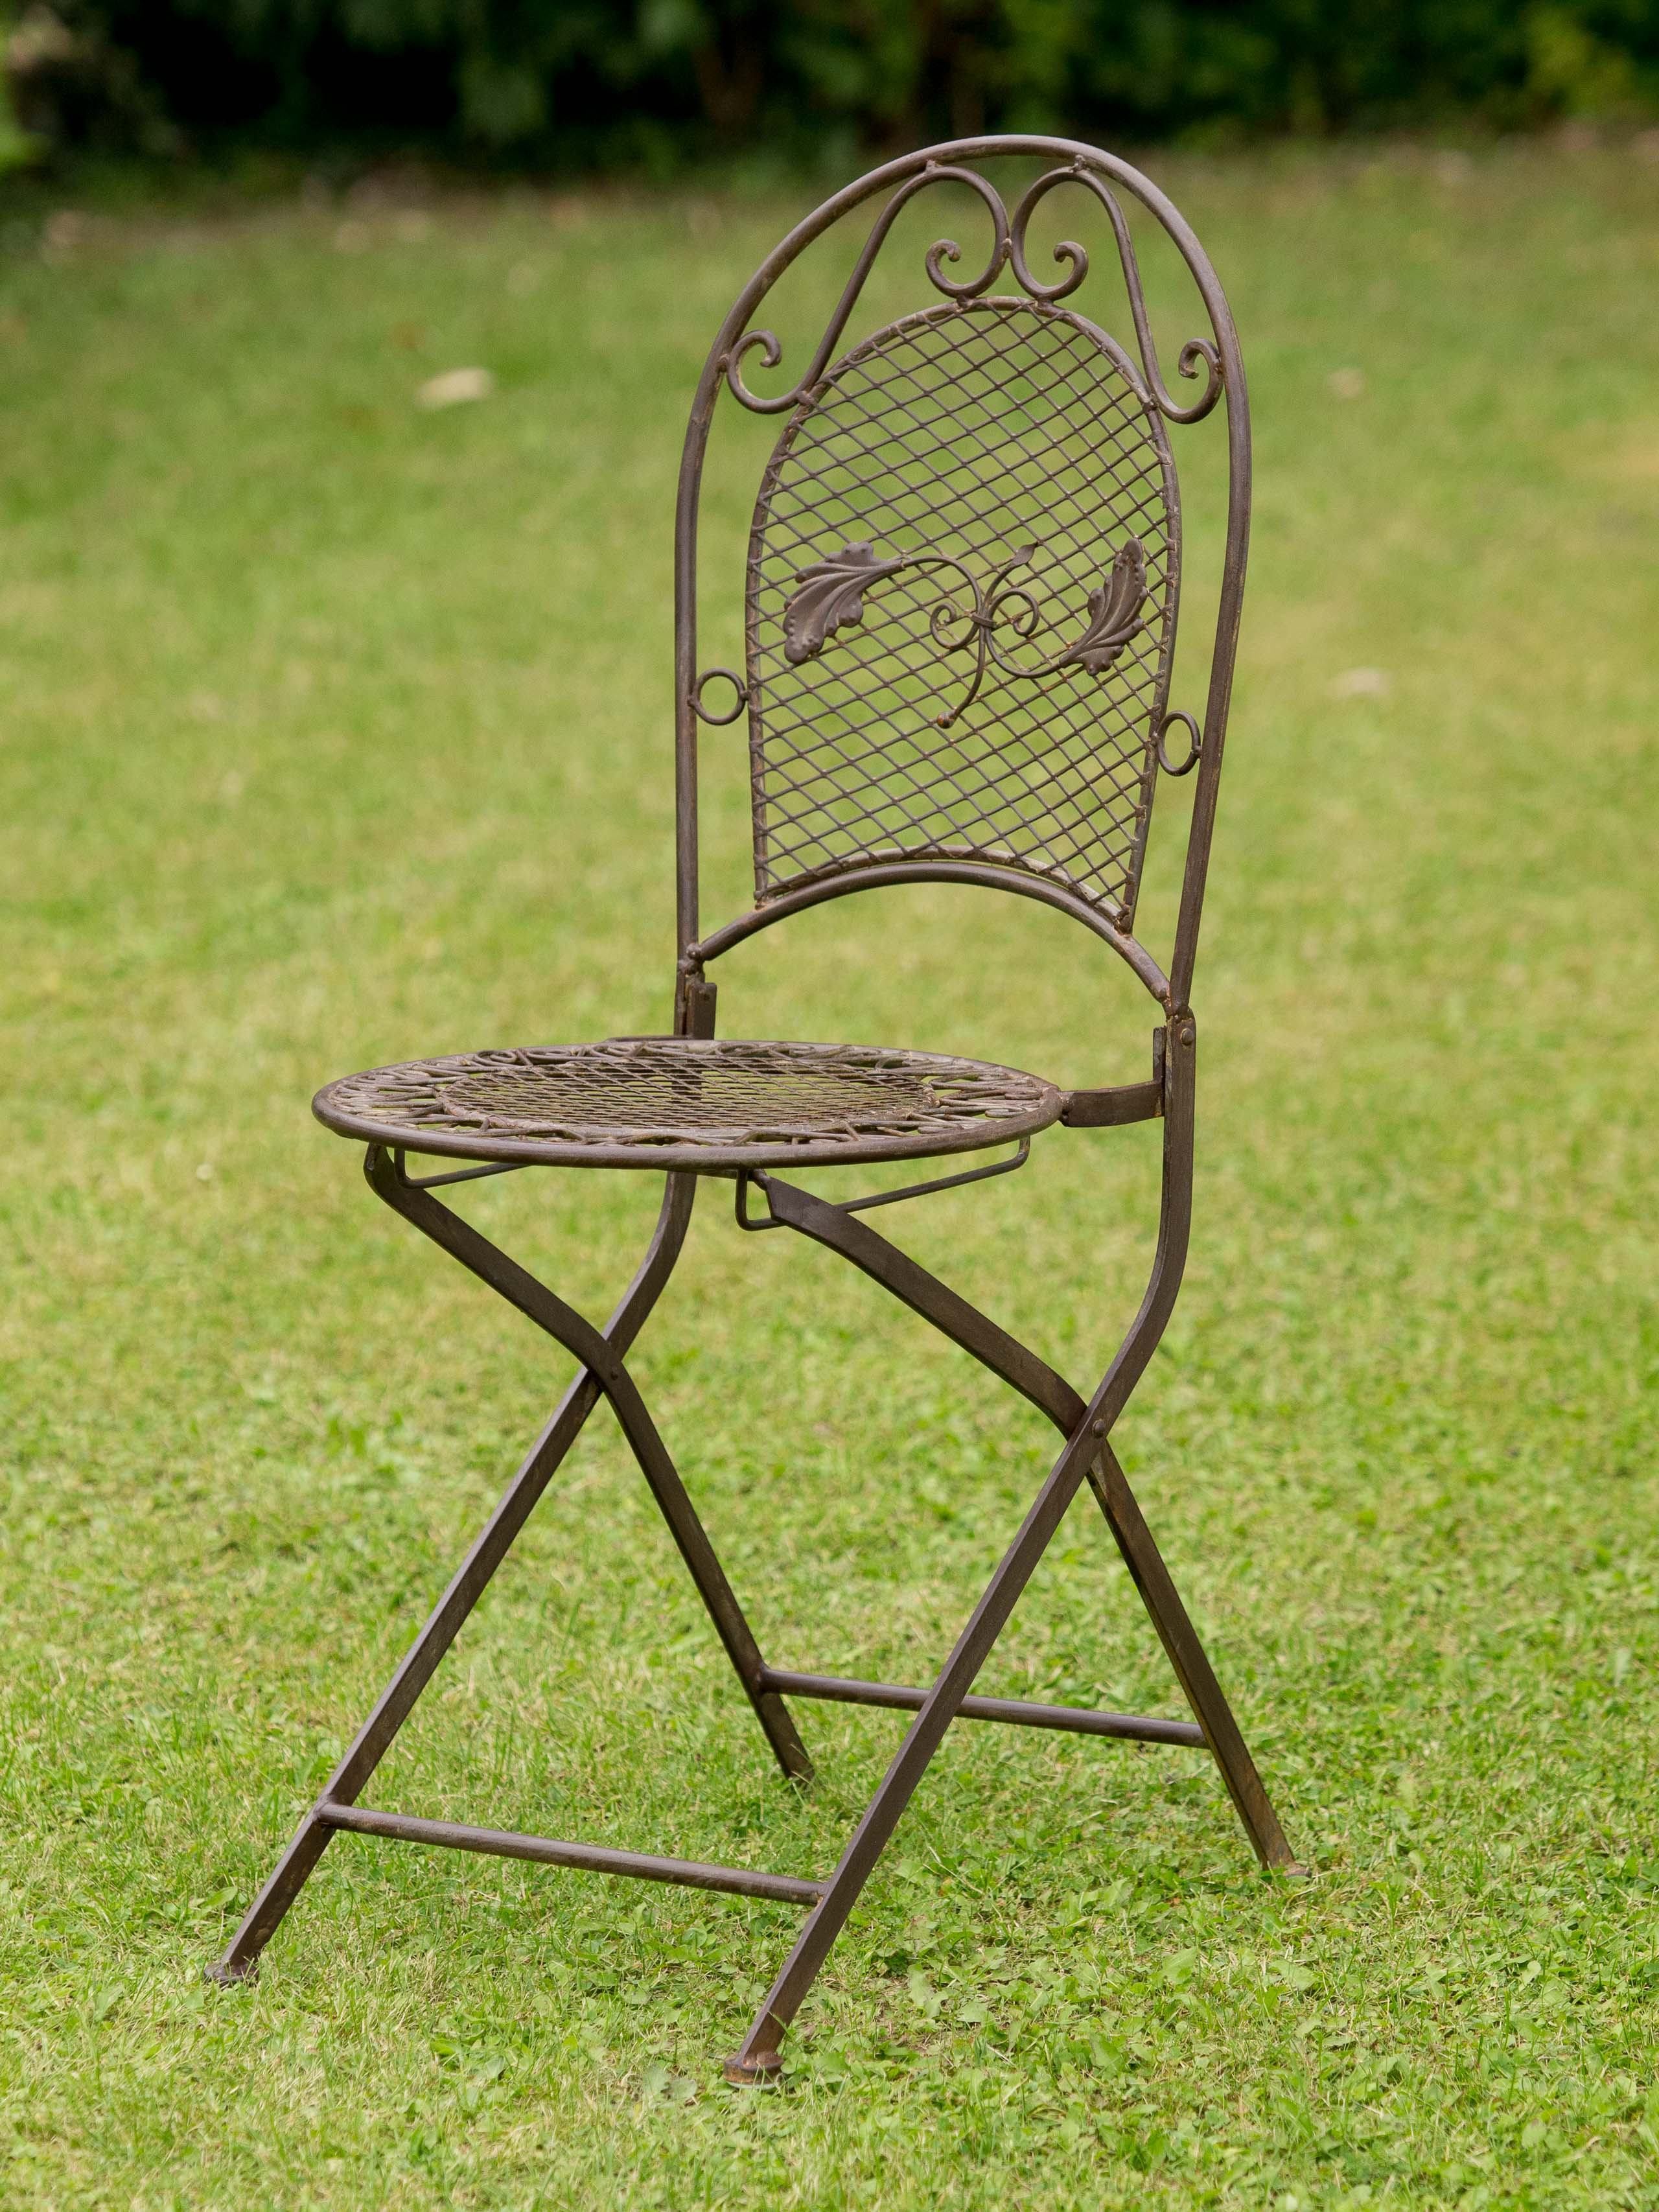 2x garden seat per 9kg wrought iron chair folding chair antique style brown